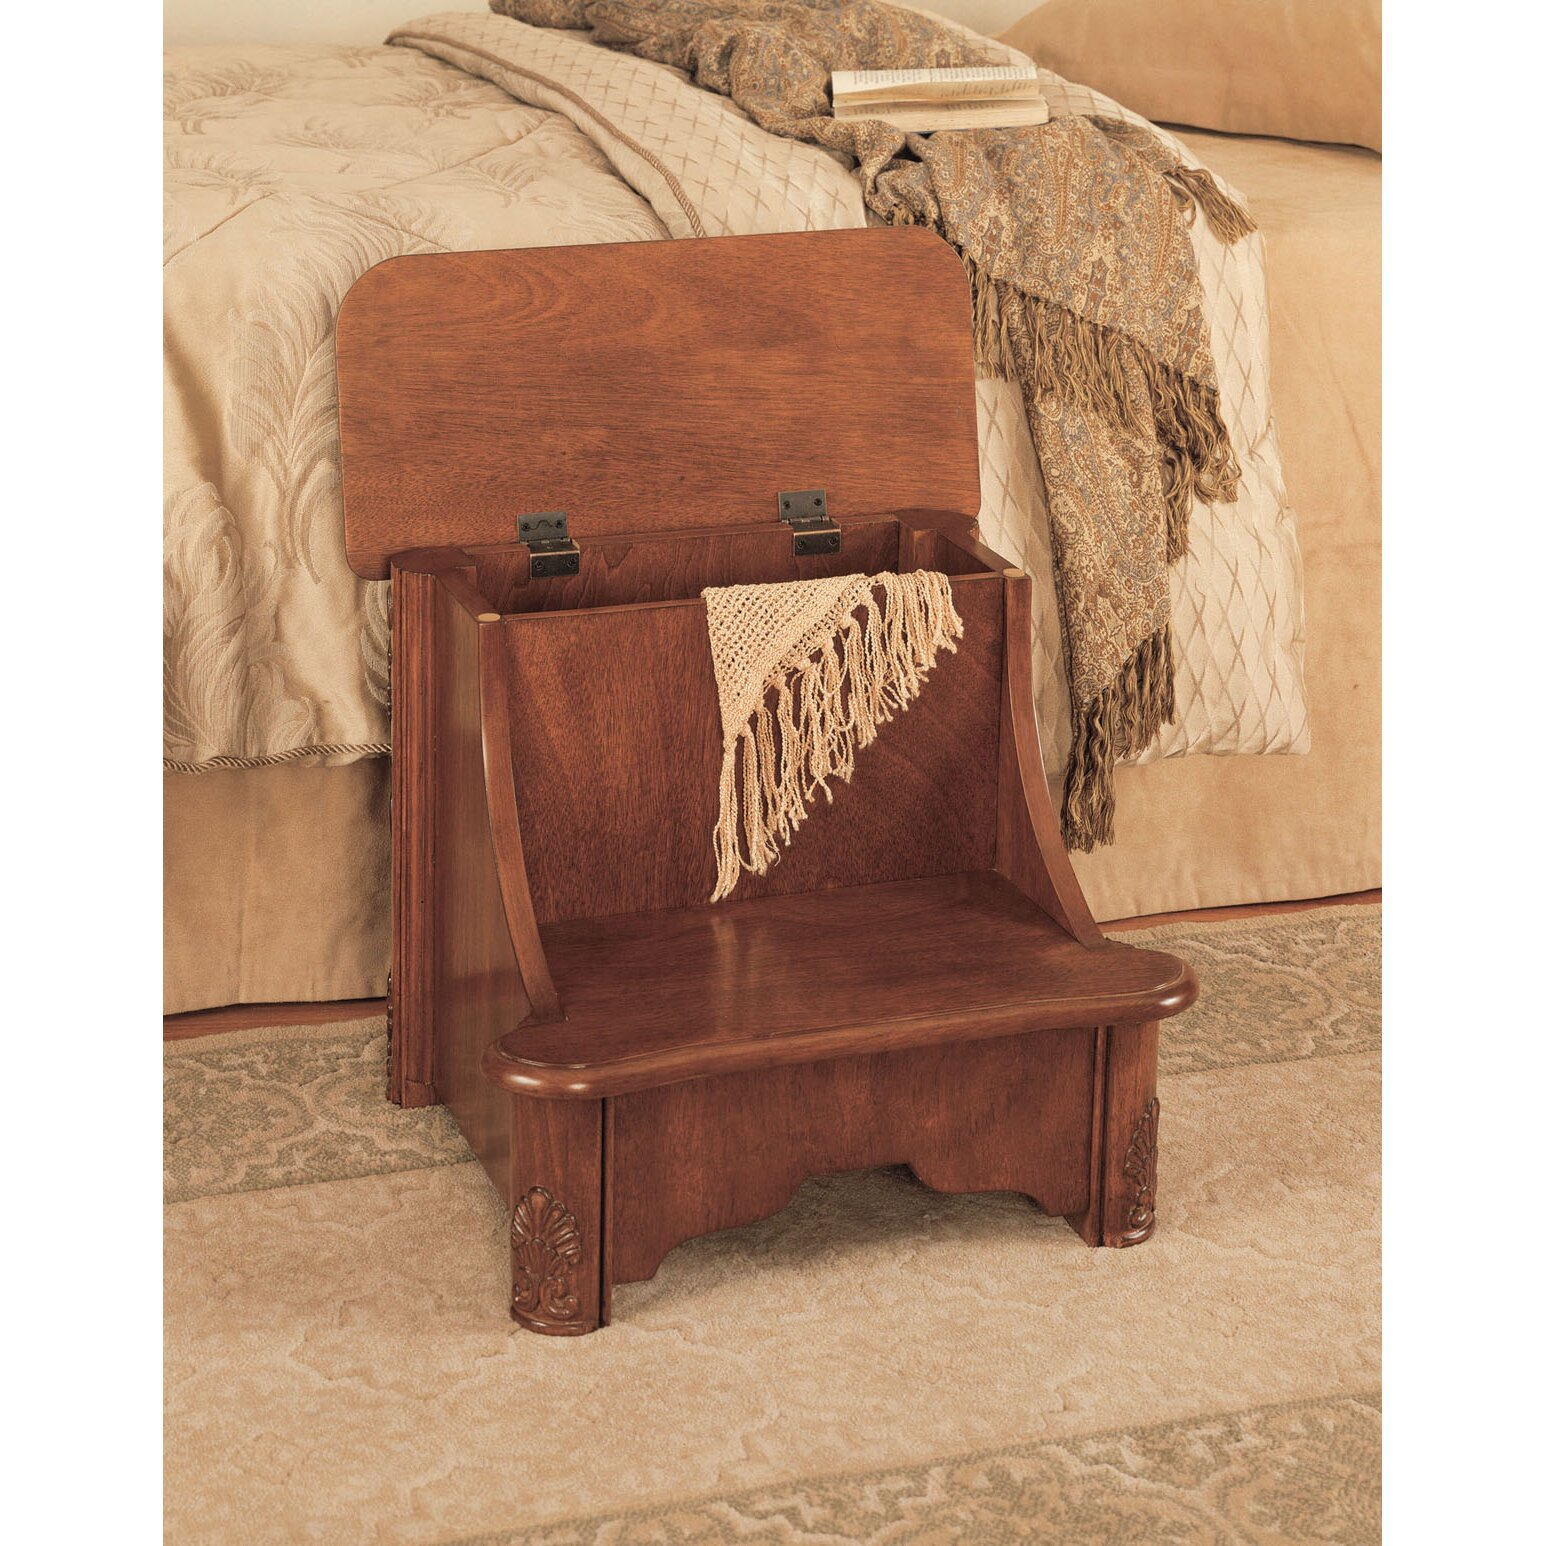 Powell Furniture Woodbury Mahogany 2 Step Manufactured Wood Bed Step Stool  with 200 lb